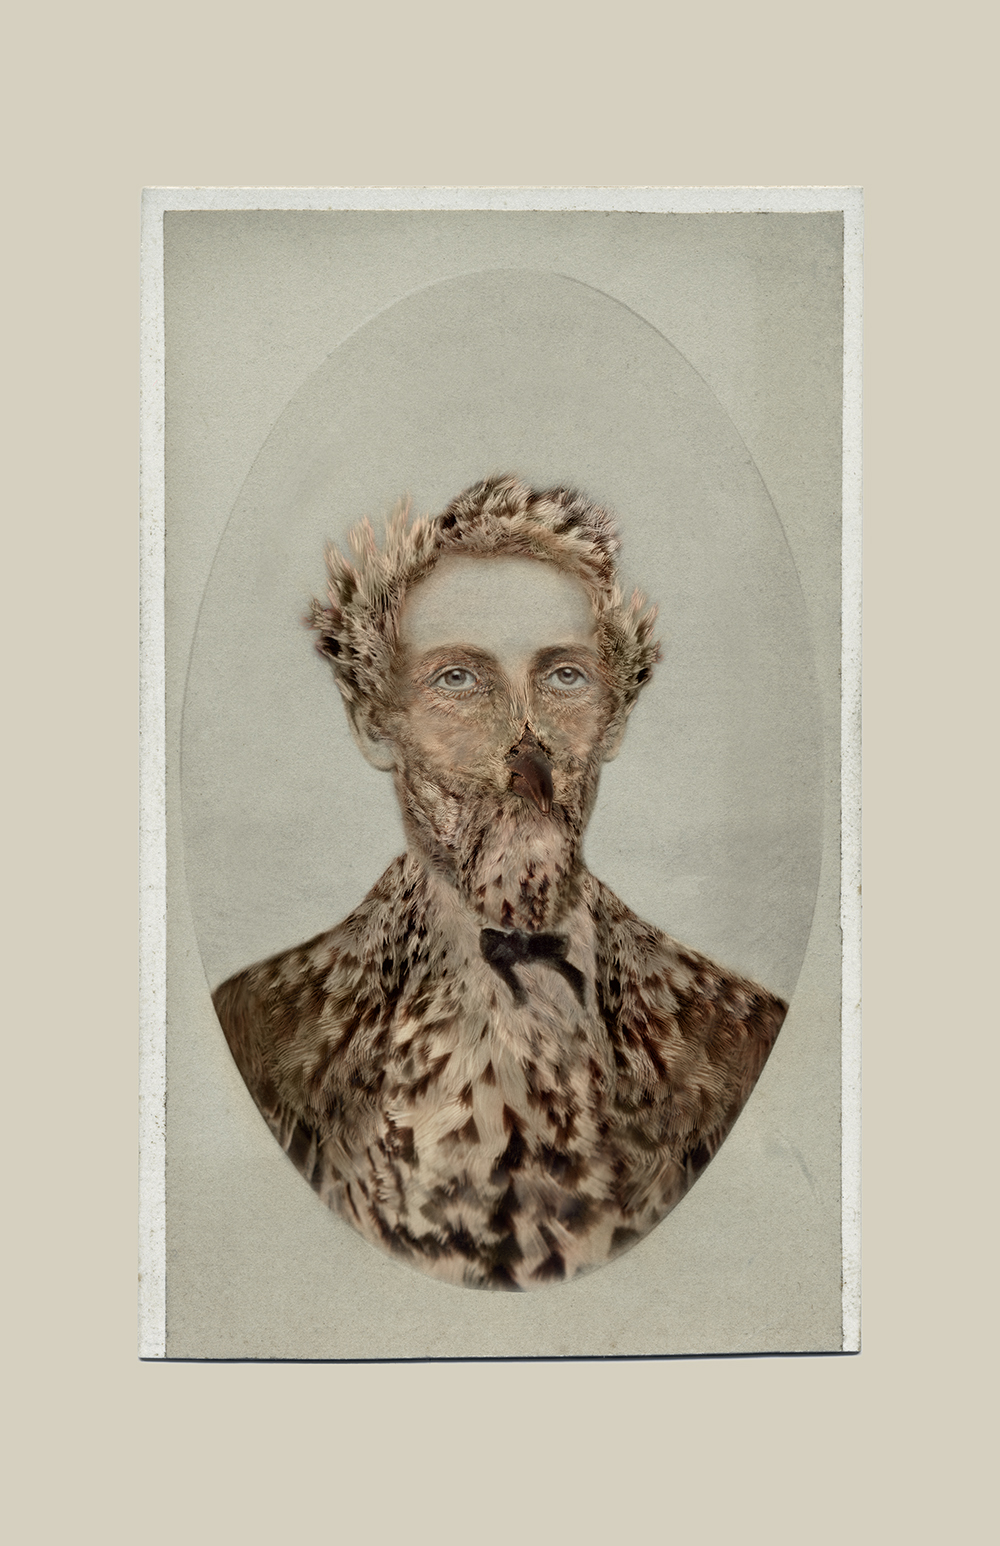 Aviary © Sara Angelucci   Sage Thrasher/endangered , 2013 C-print, 22 x 33.5 inches